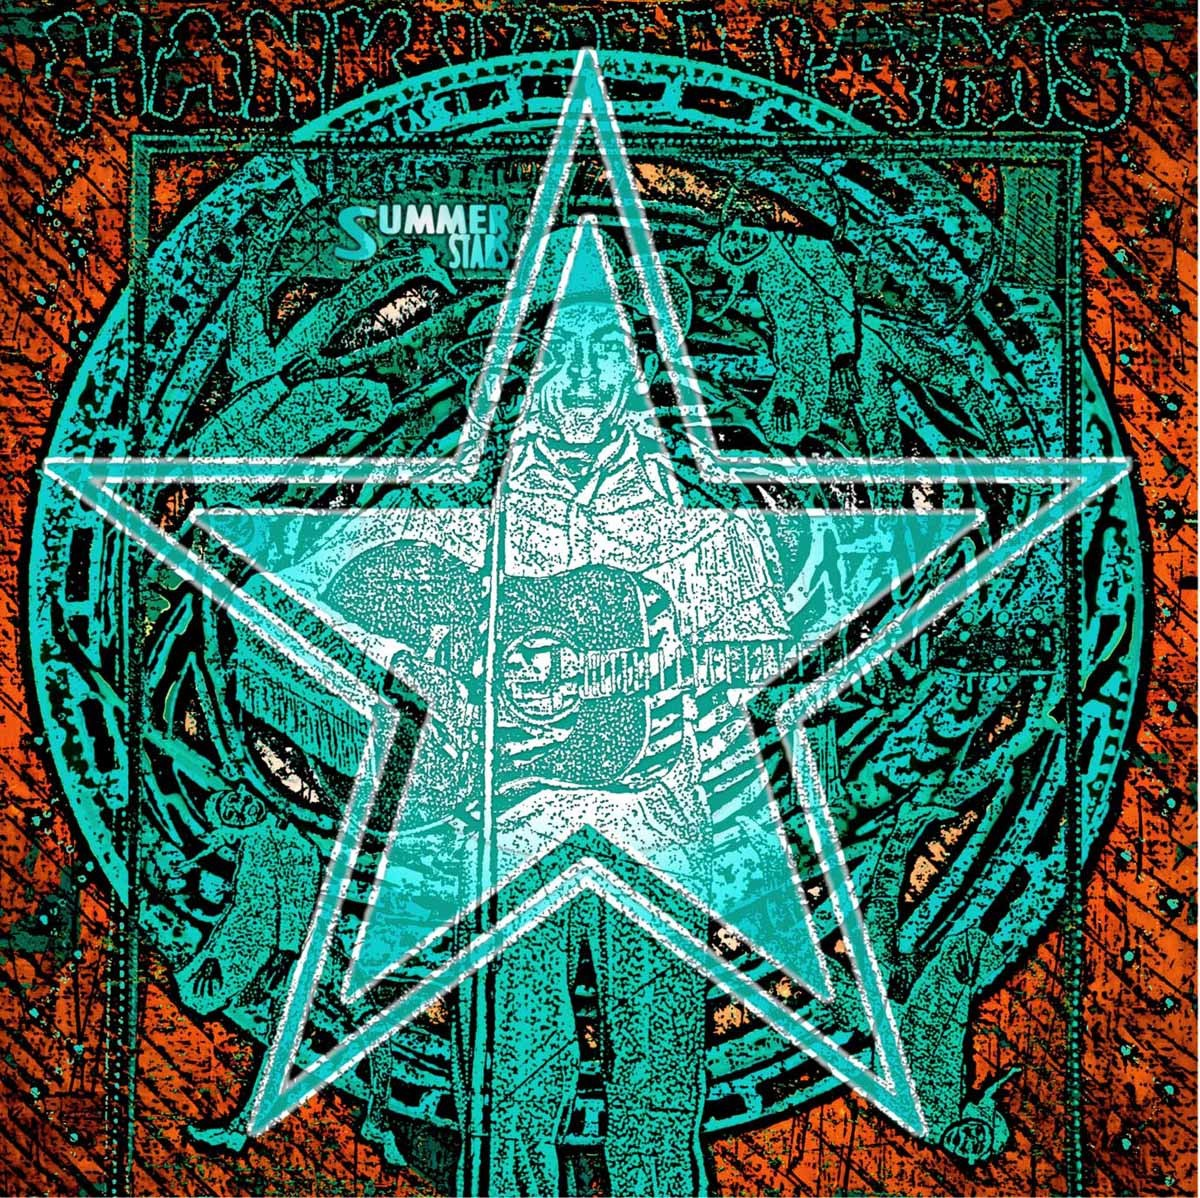 Summer Stars - Jon Langford - Yard Dog Art